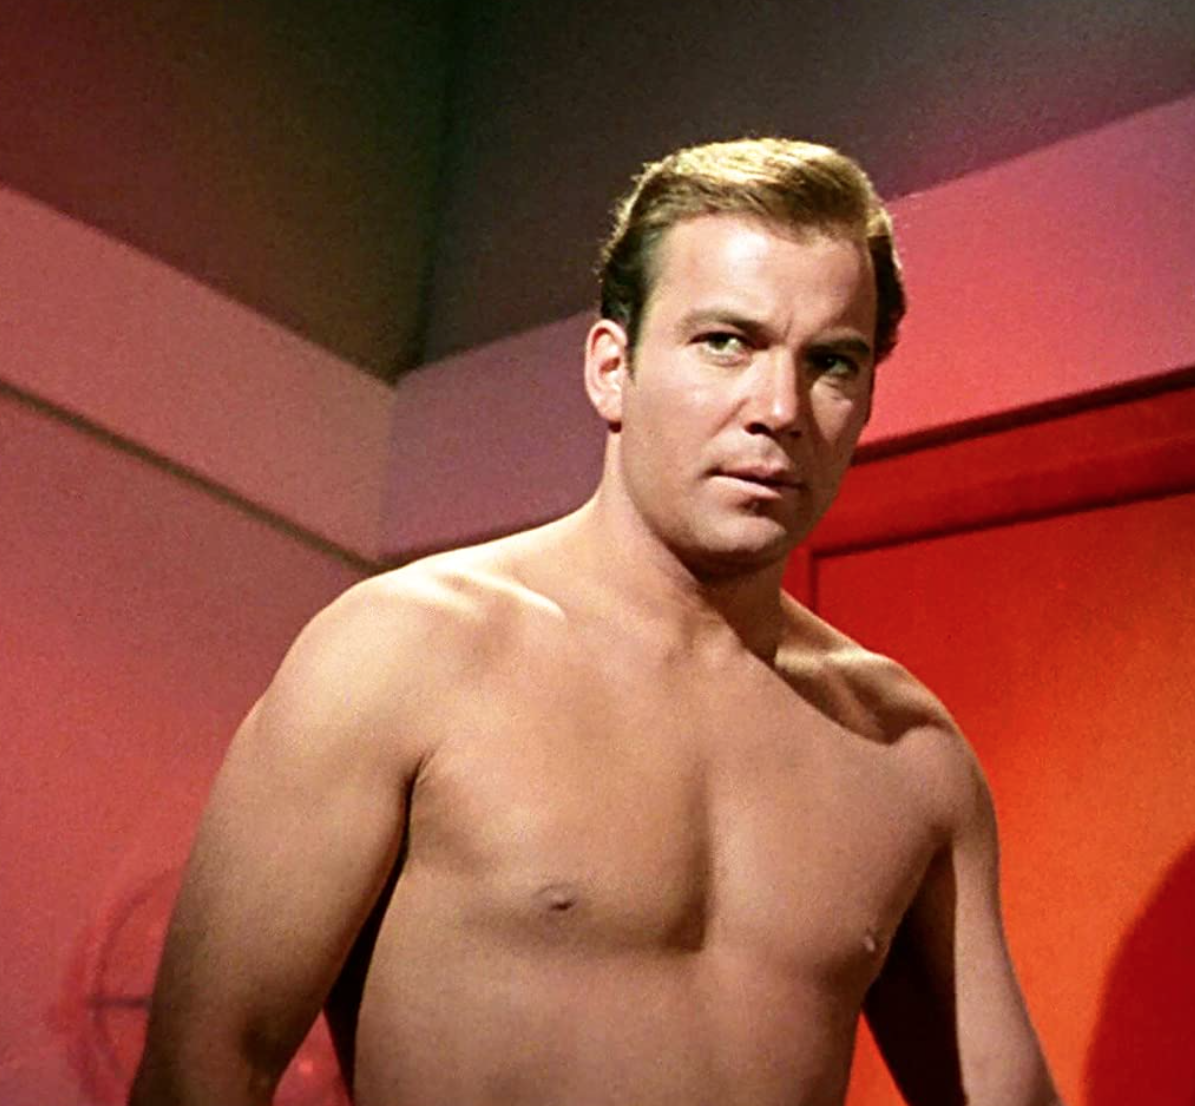 Screen Shot 2021 04 15 at 9.00.34 am e1618473682639 21 Facts You Probably Never Knew About William Shatner